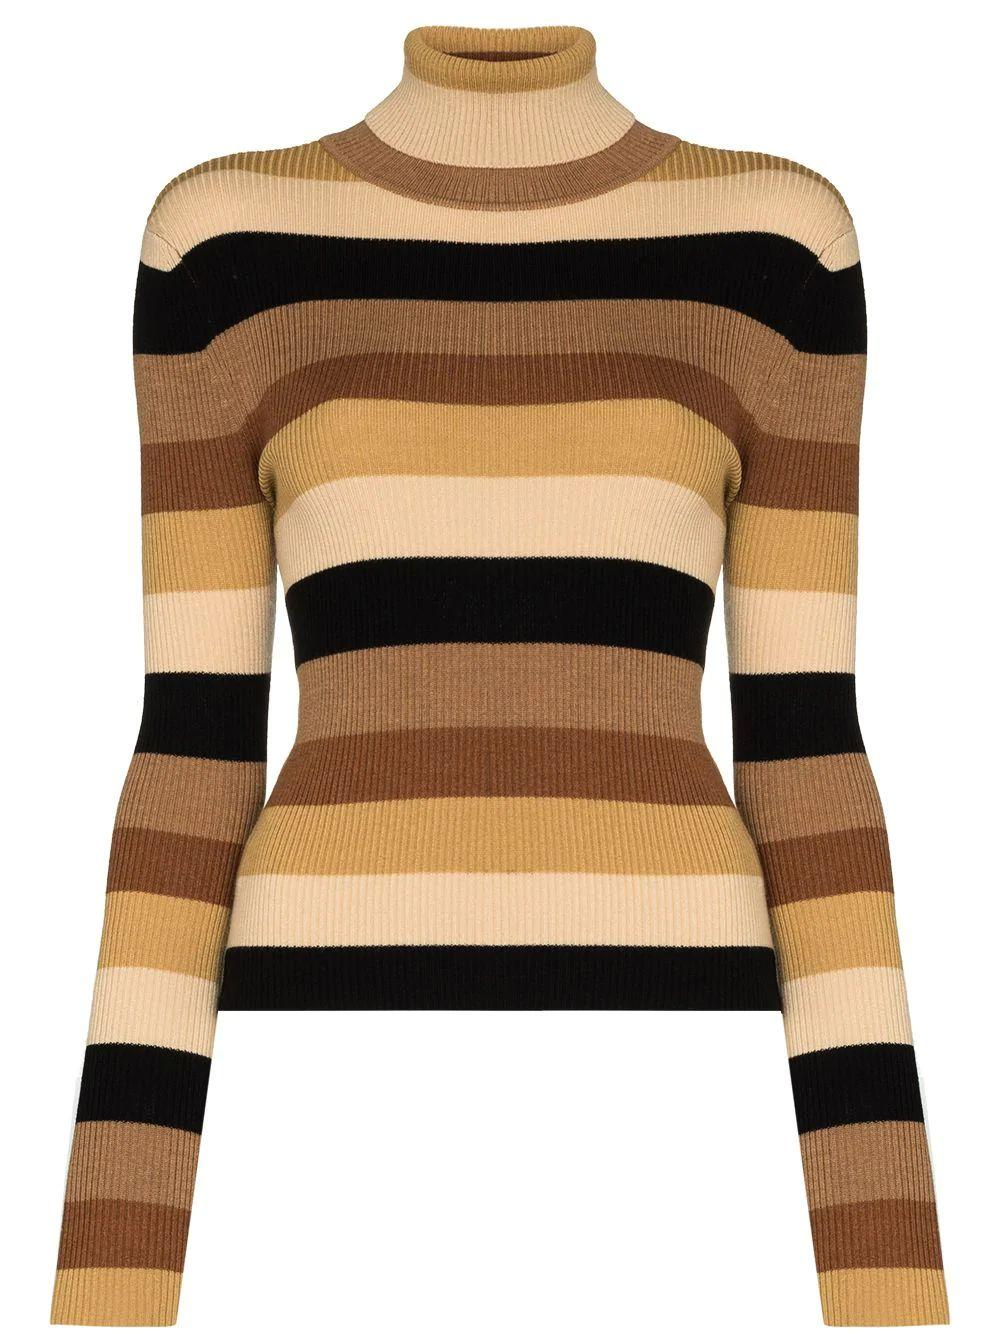 Ken Striped Turtleneck